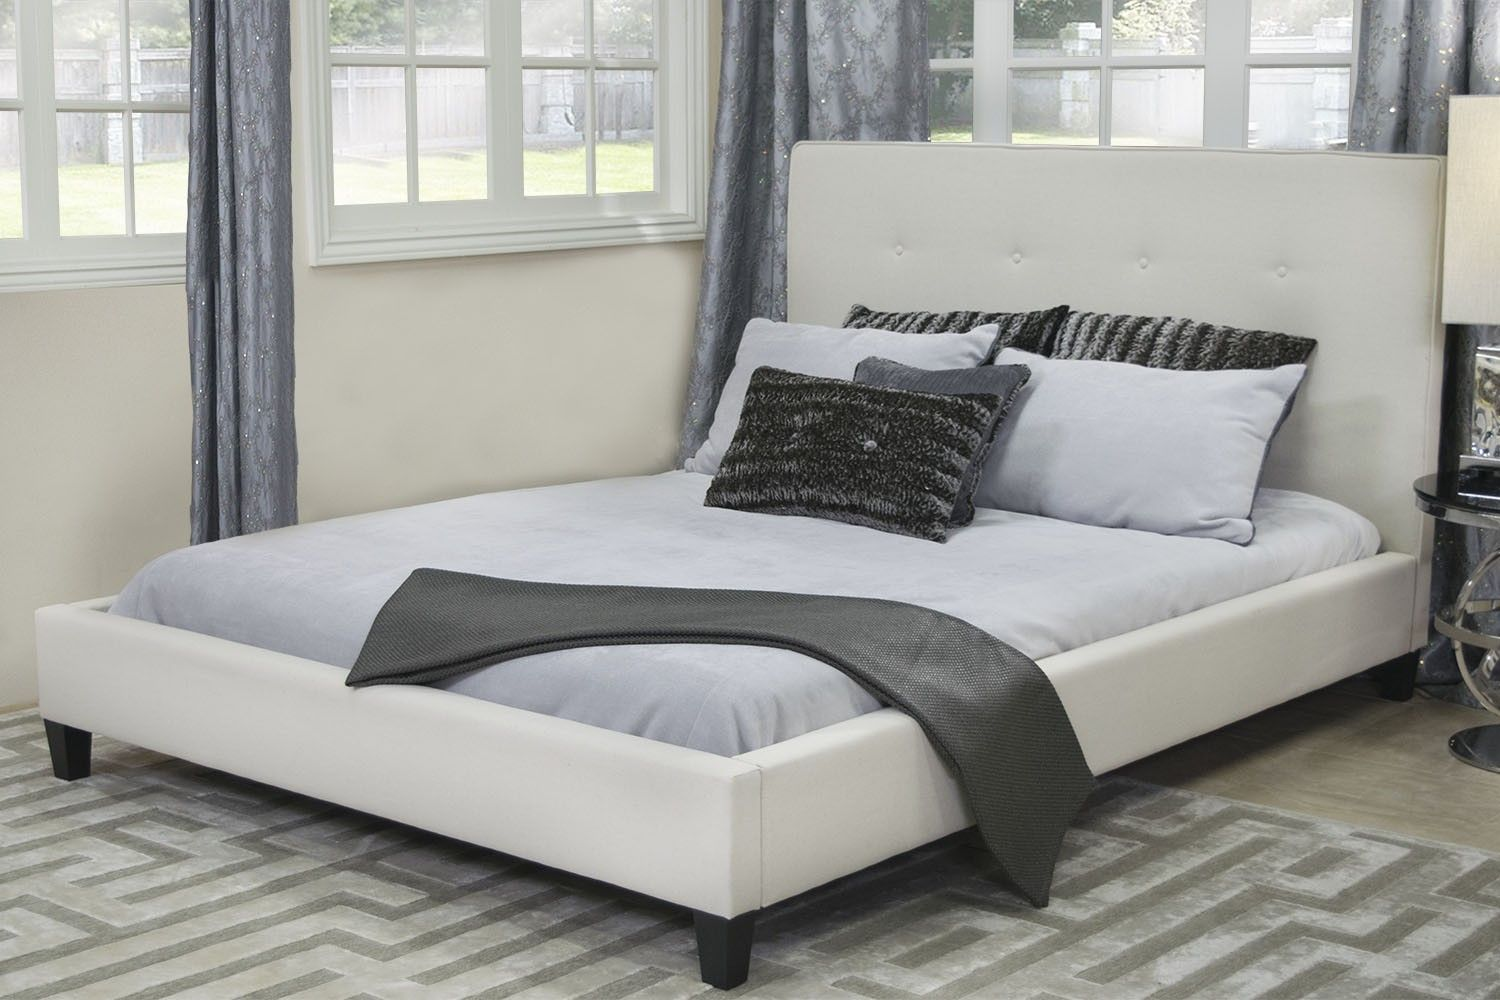 Mor furniture for less the mid century modern queen bed mor furniture for less